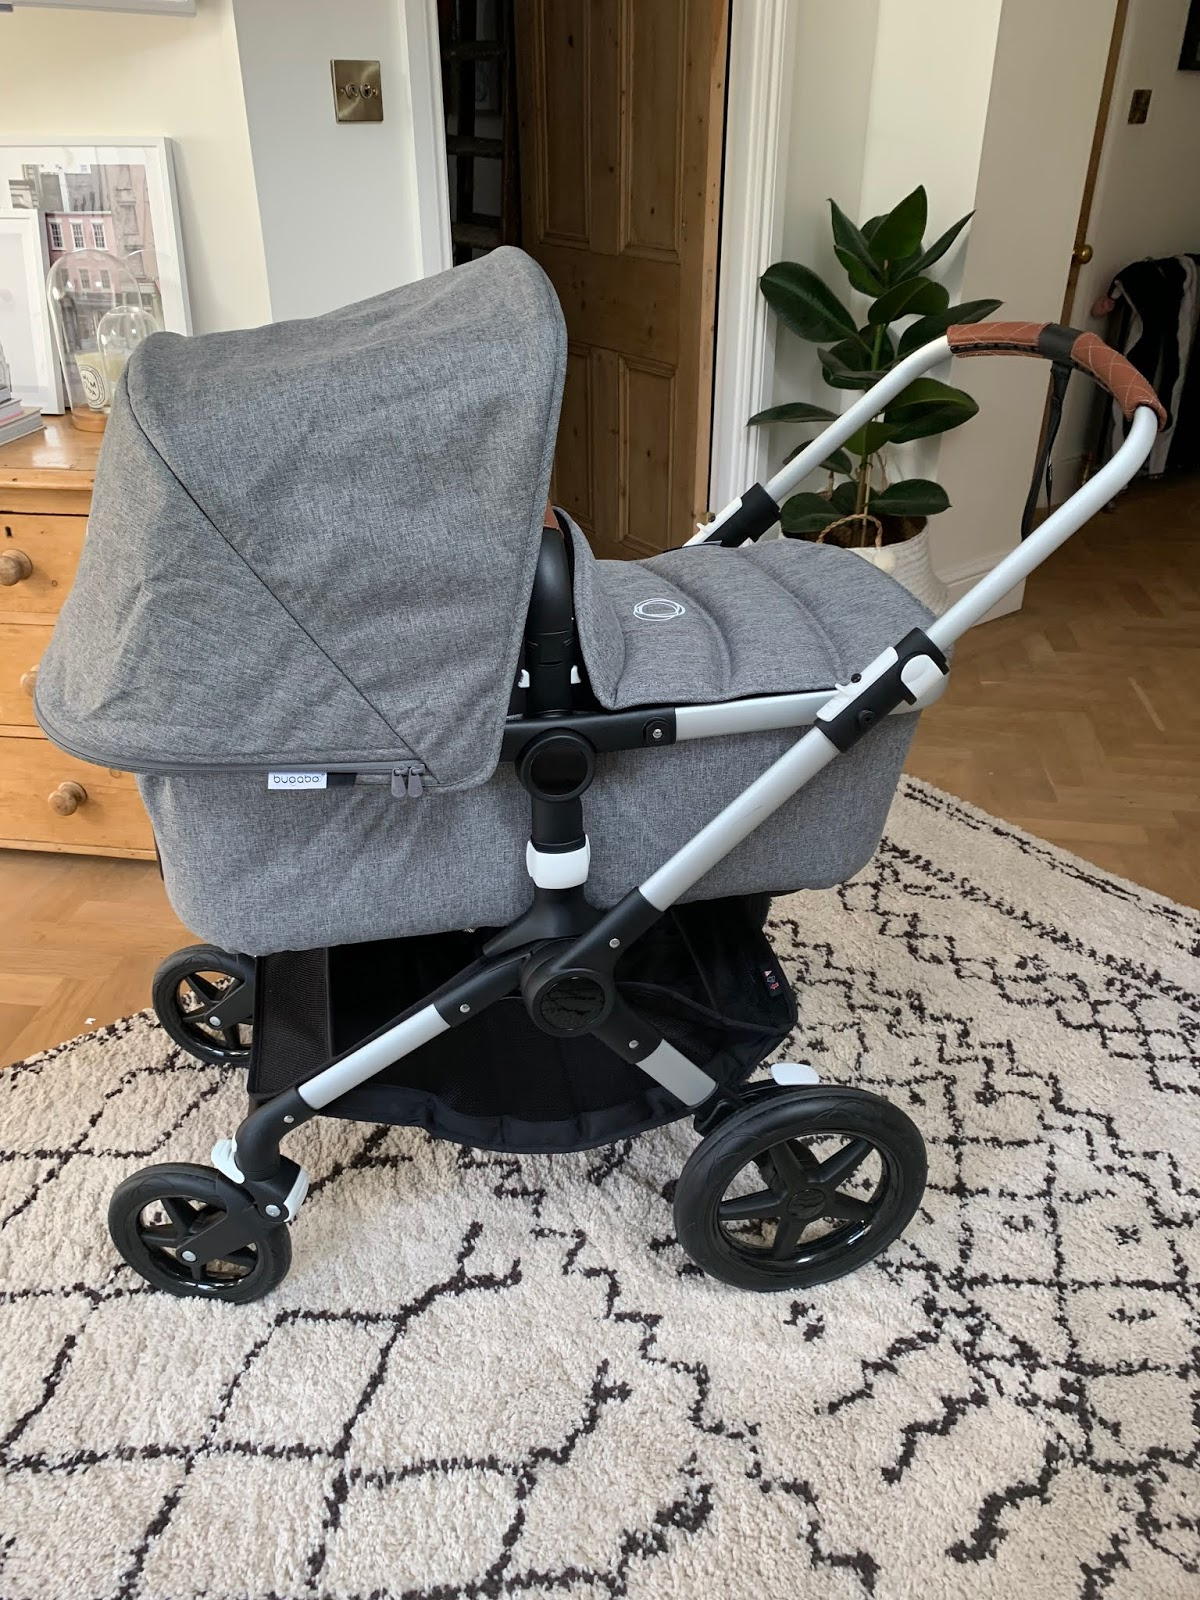 Baby Pushing Pram Youtube Pregnancy How We Chose Our Pram A Bugaboo Fox First